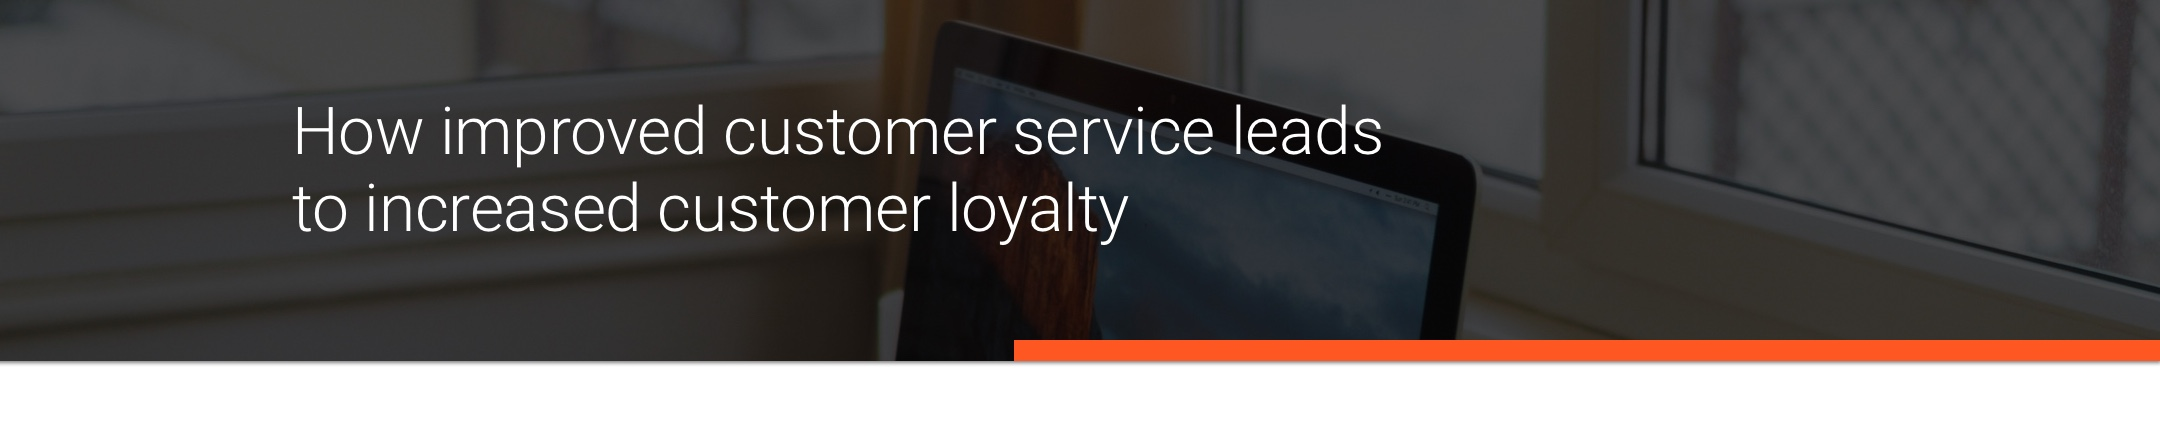 How improved customer service leads to increased customer loyalty